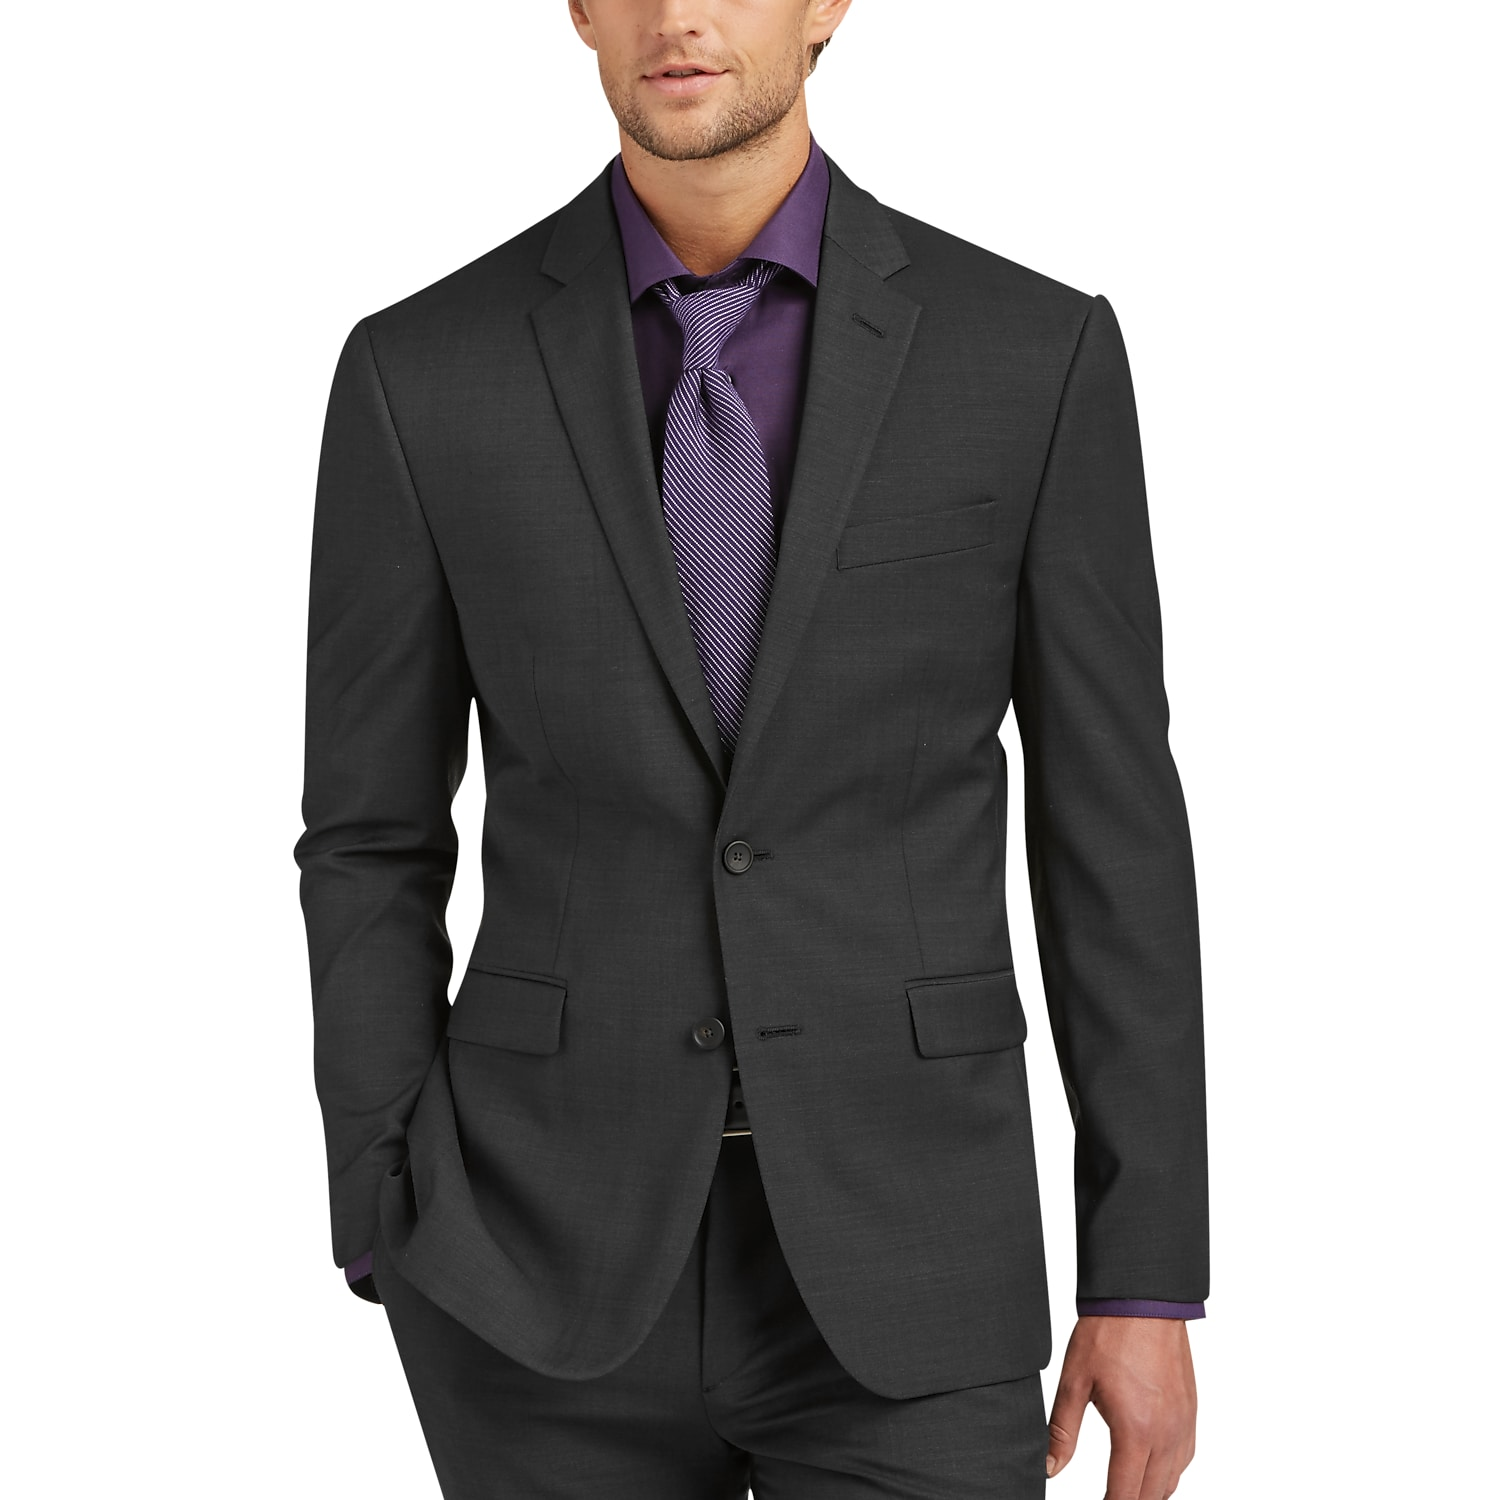 Awearness Kenneth Cole AWEAR-TECH Charcoal Extreme Slim Fit Suit Separates  Coat 25b789dc2